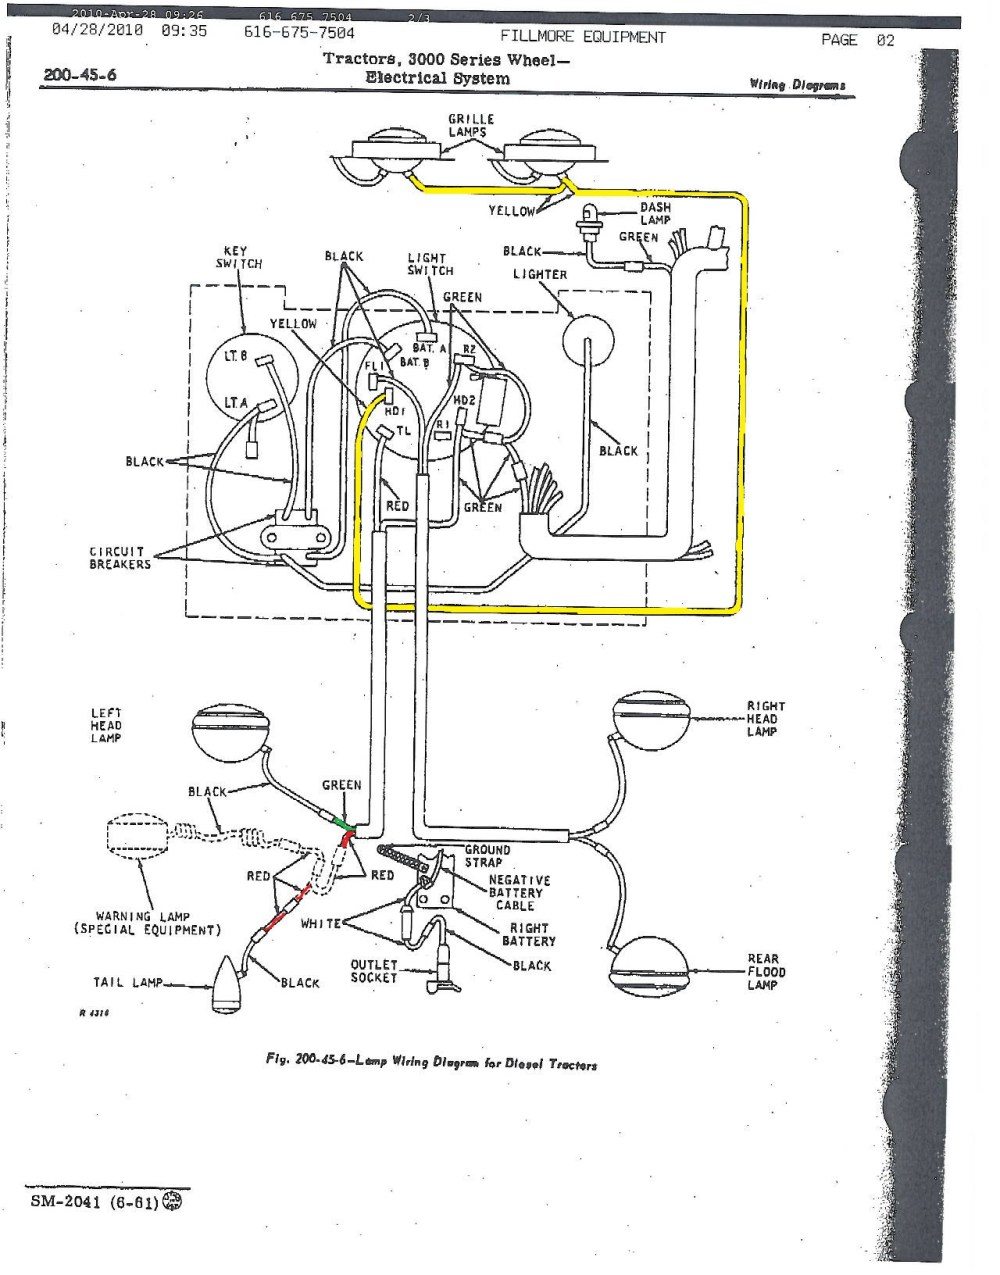 medium resolution of john deere 3010 wiring diagram wiring diagram database john deere 3010 light wiring diagram jd 3010 wiring diagram